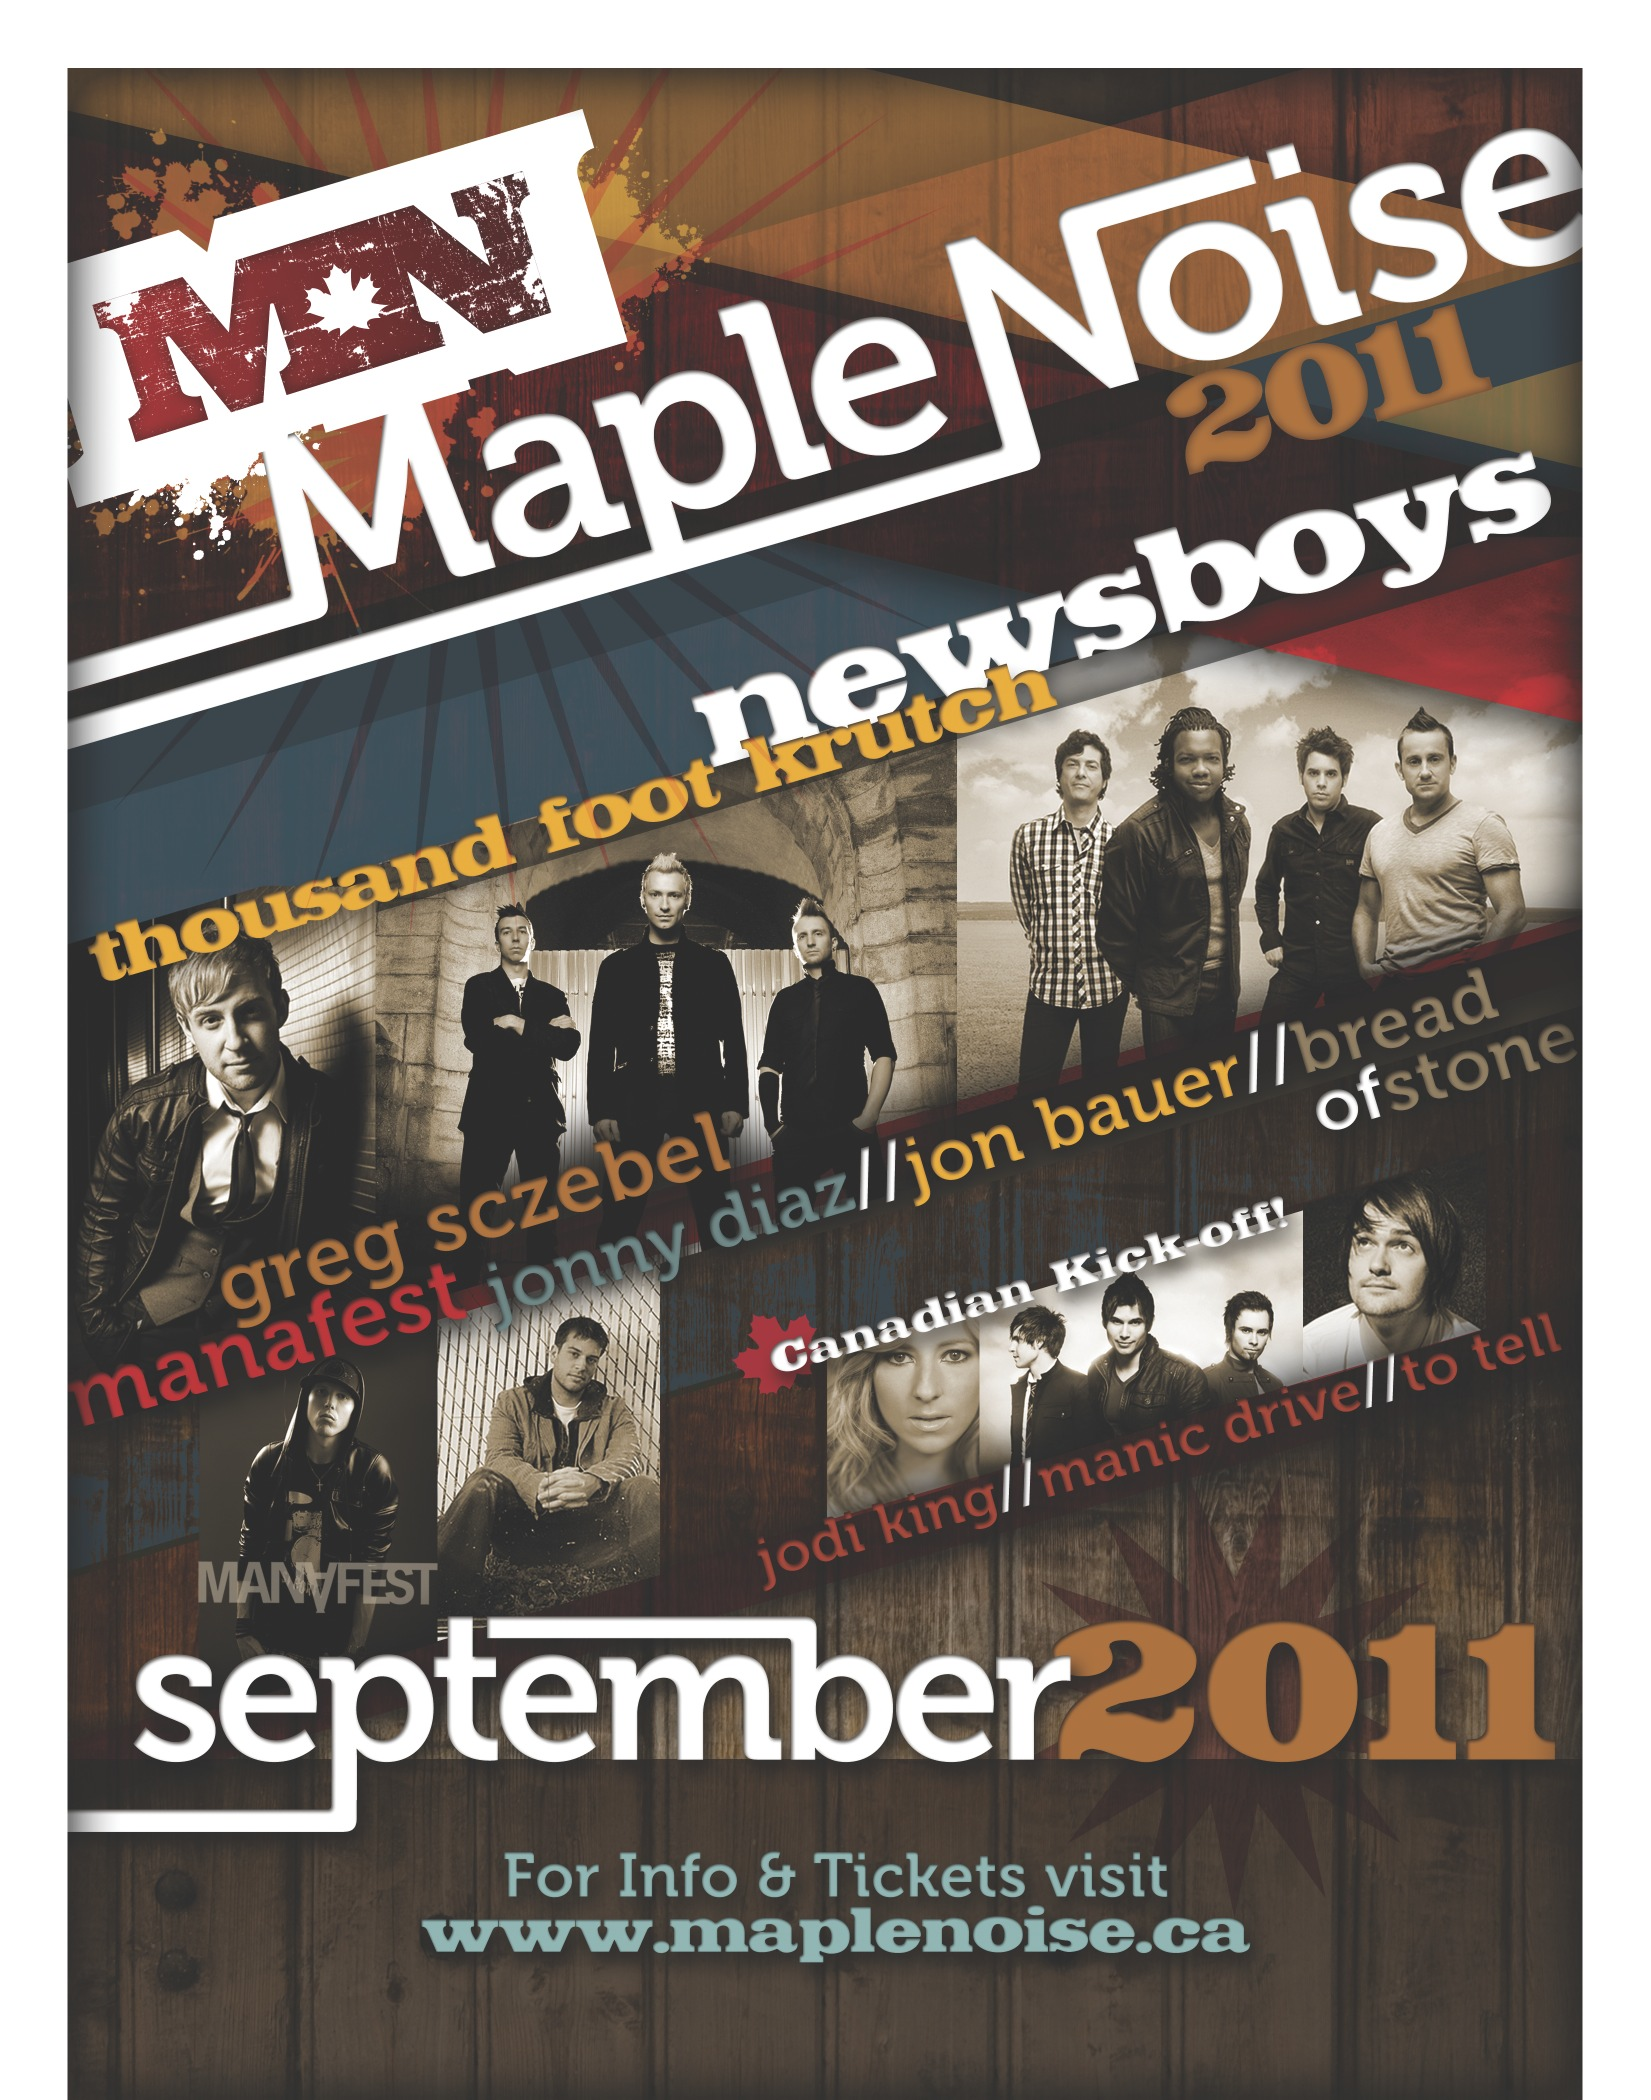 Christian Bands On Tour In Canada